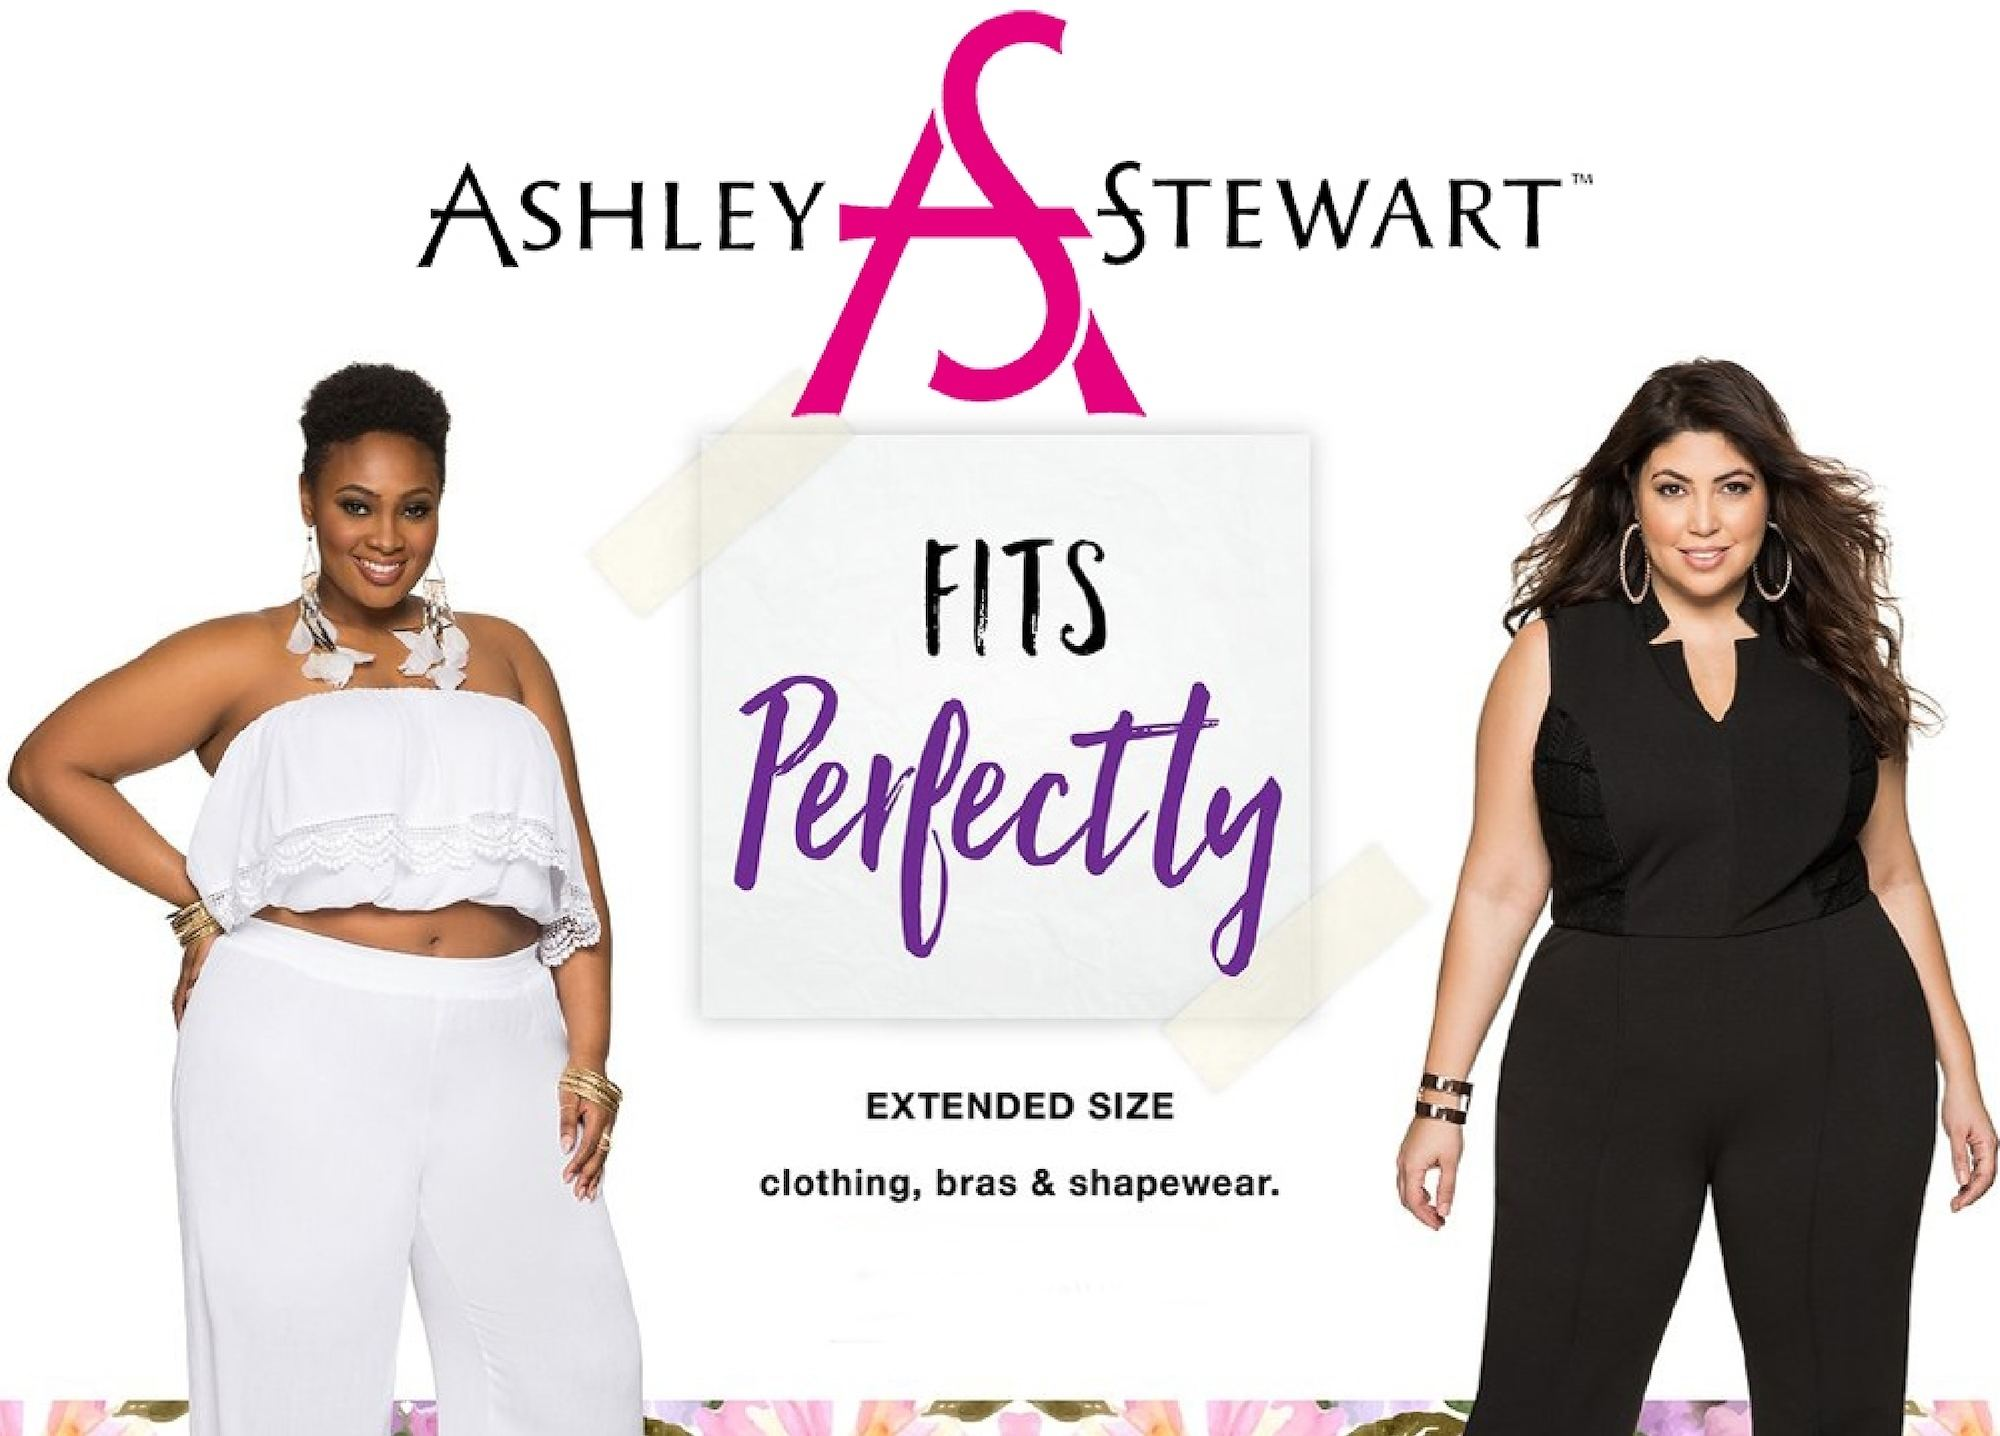 Ashley Stewart April 2017